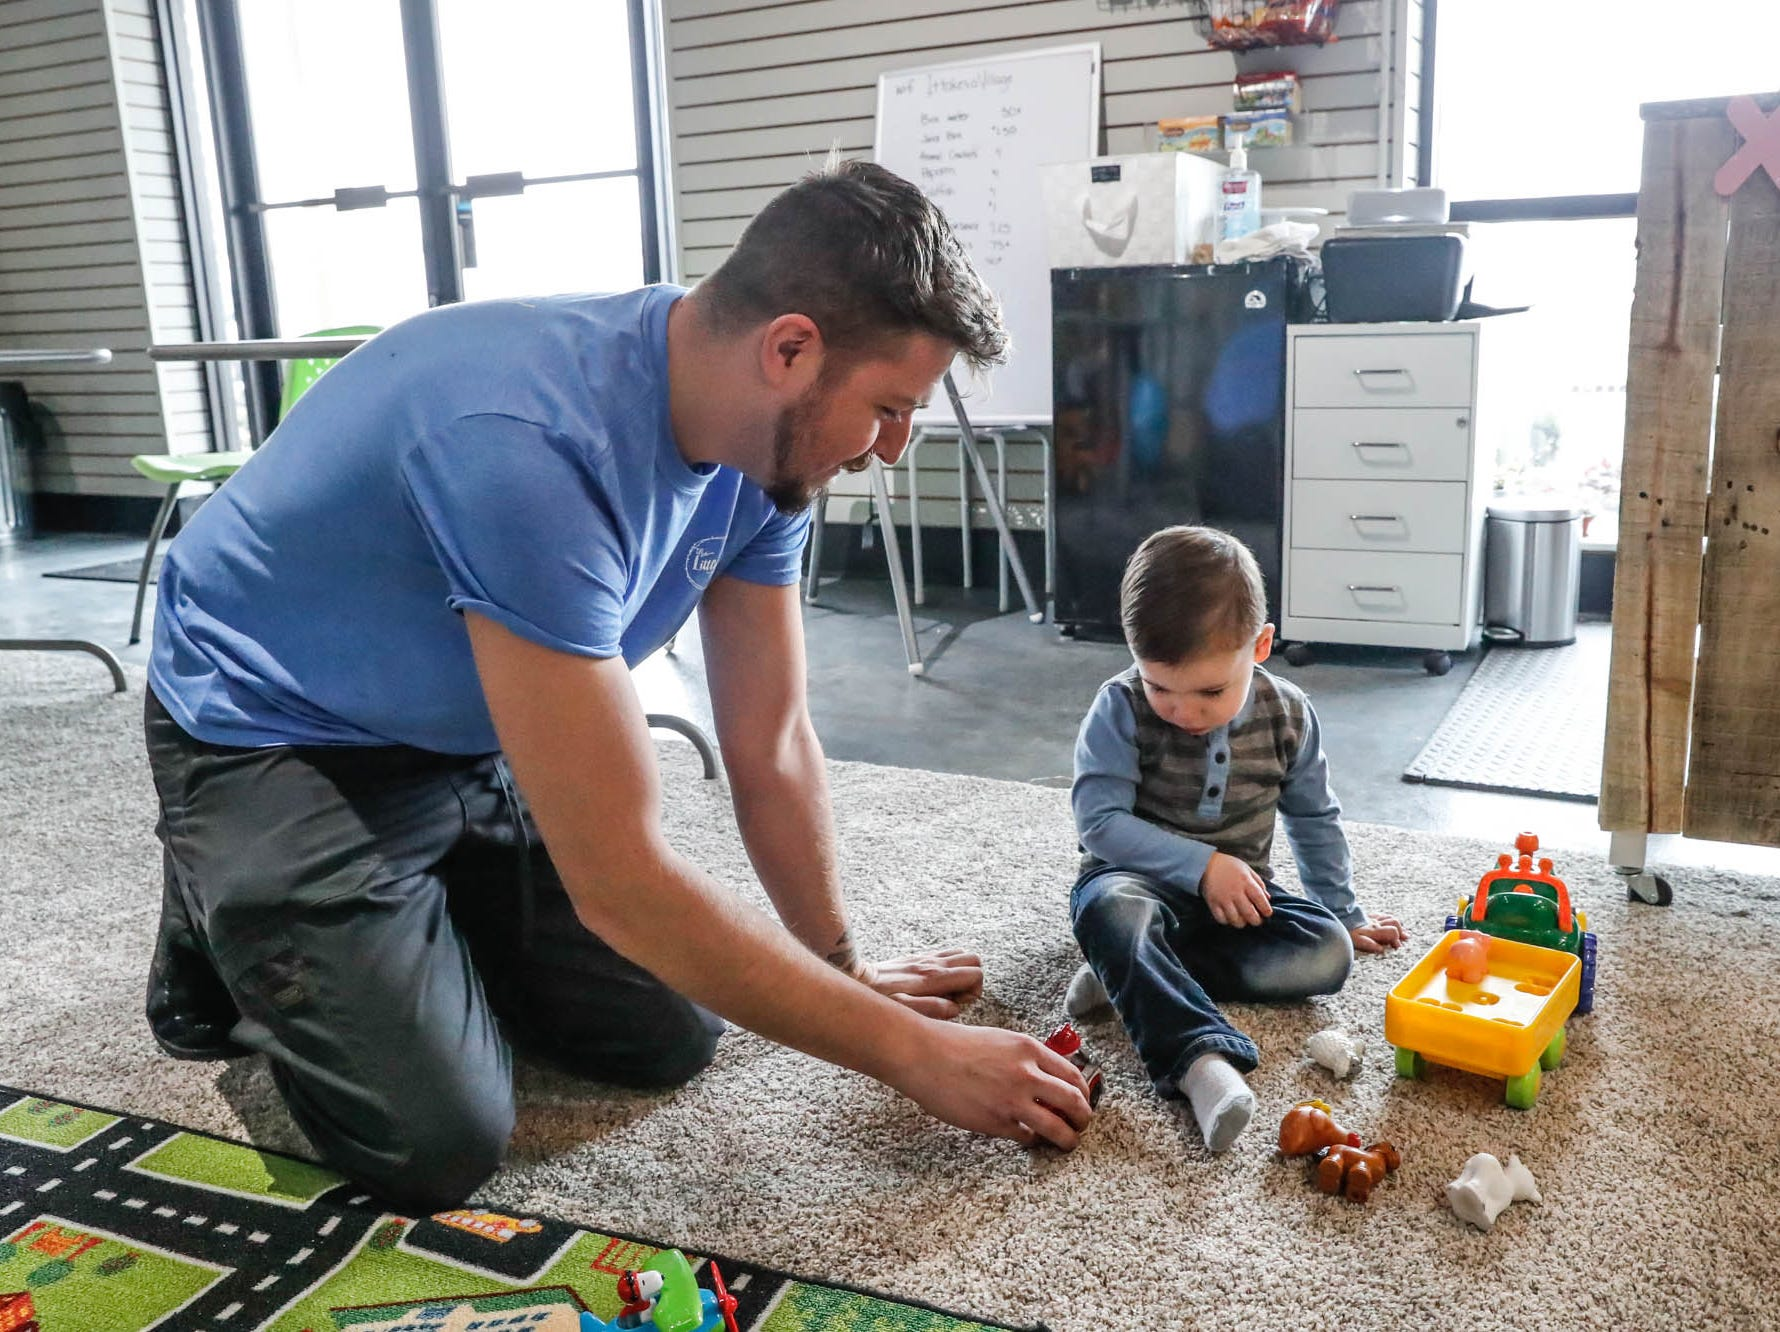 Staff member, Craig Smith, left, plays cars with Barrett Richards at The Little Village Playroom, 9850 N. Michigan Rd, Carmel, Ind., on Tuesday, Feb. 5, 2019.